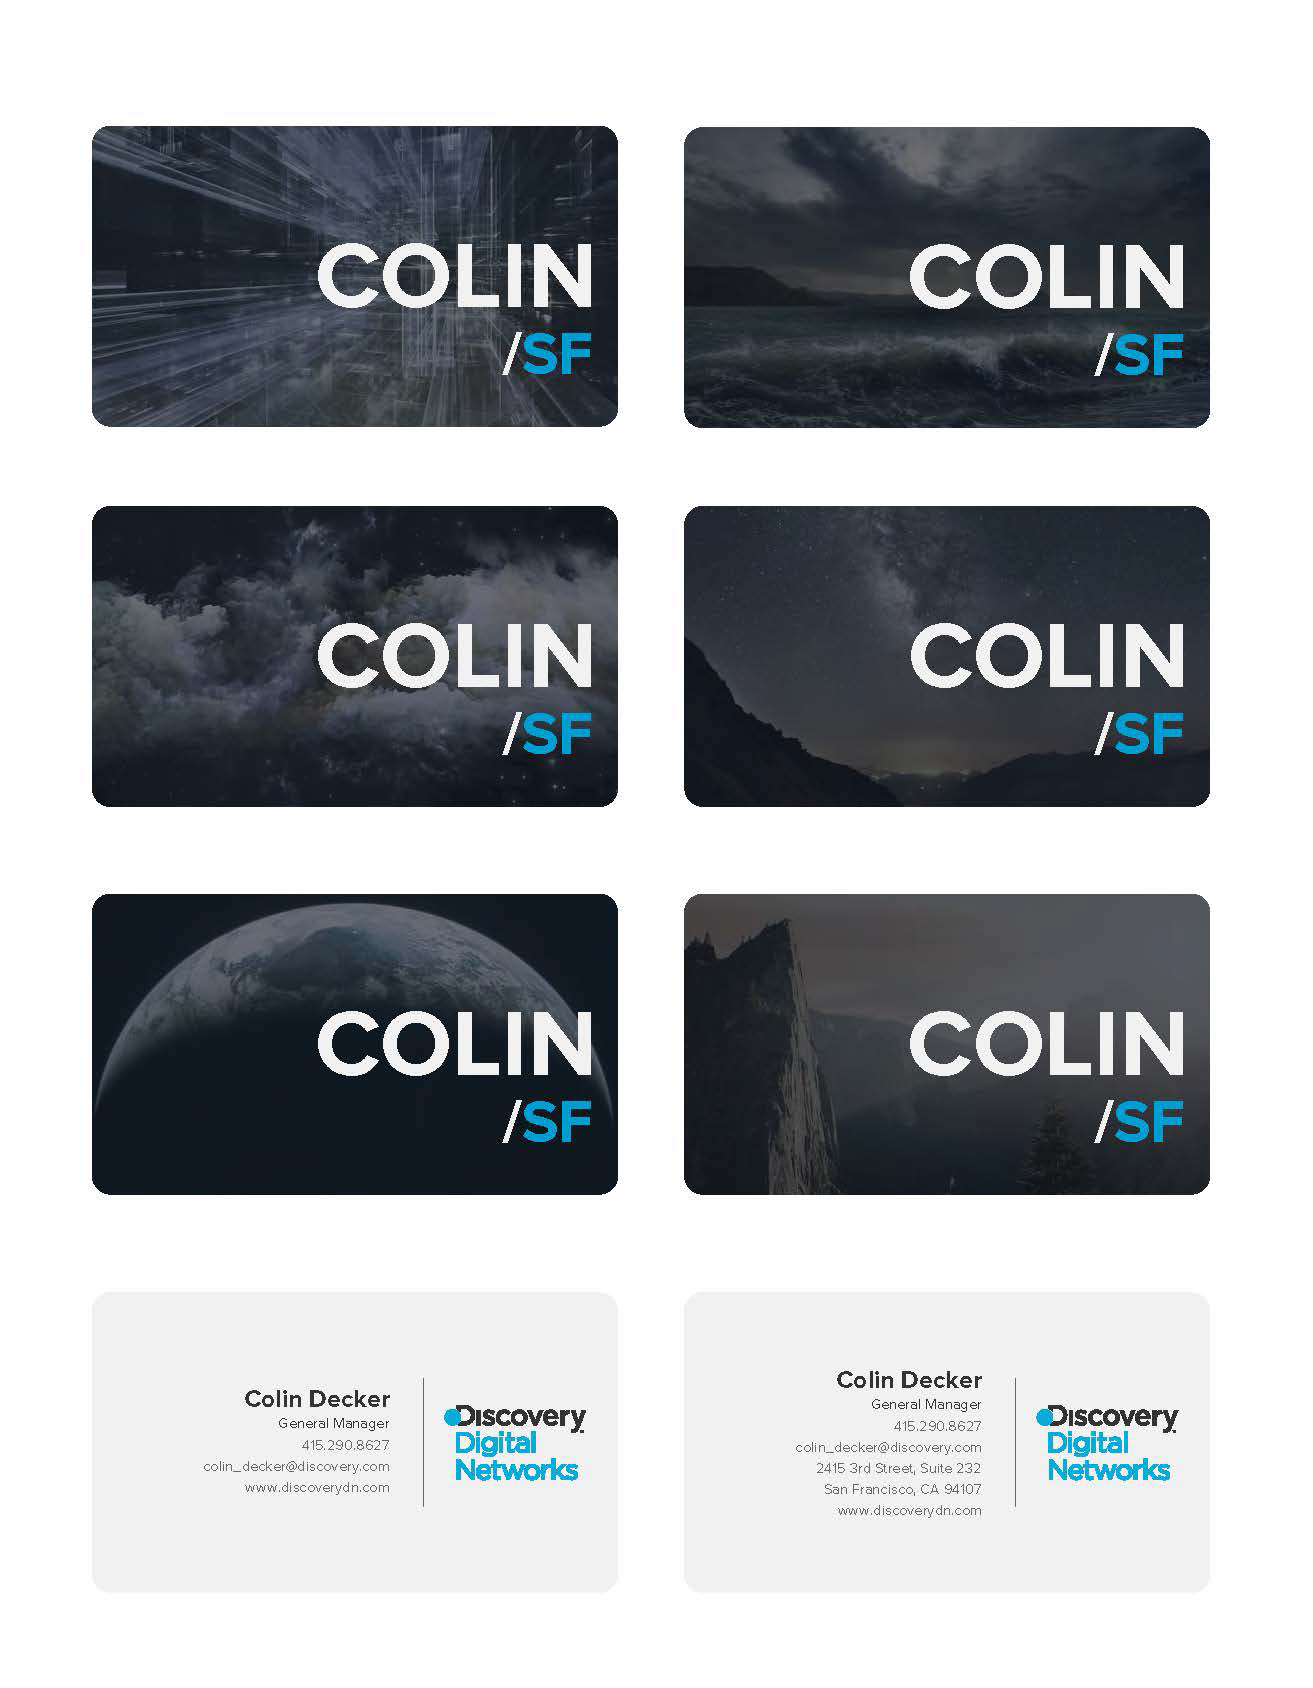 Oleksander stecyk discovery digital networks business card redesign redesignupdate of the business cards for discovery digital networks colourmoves